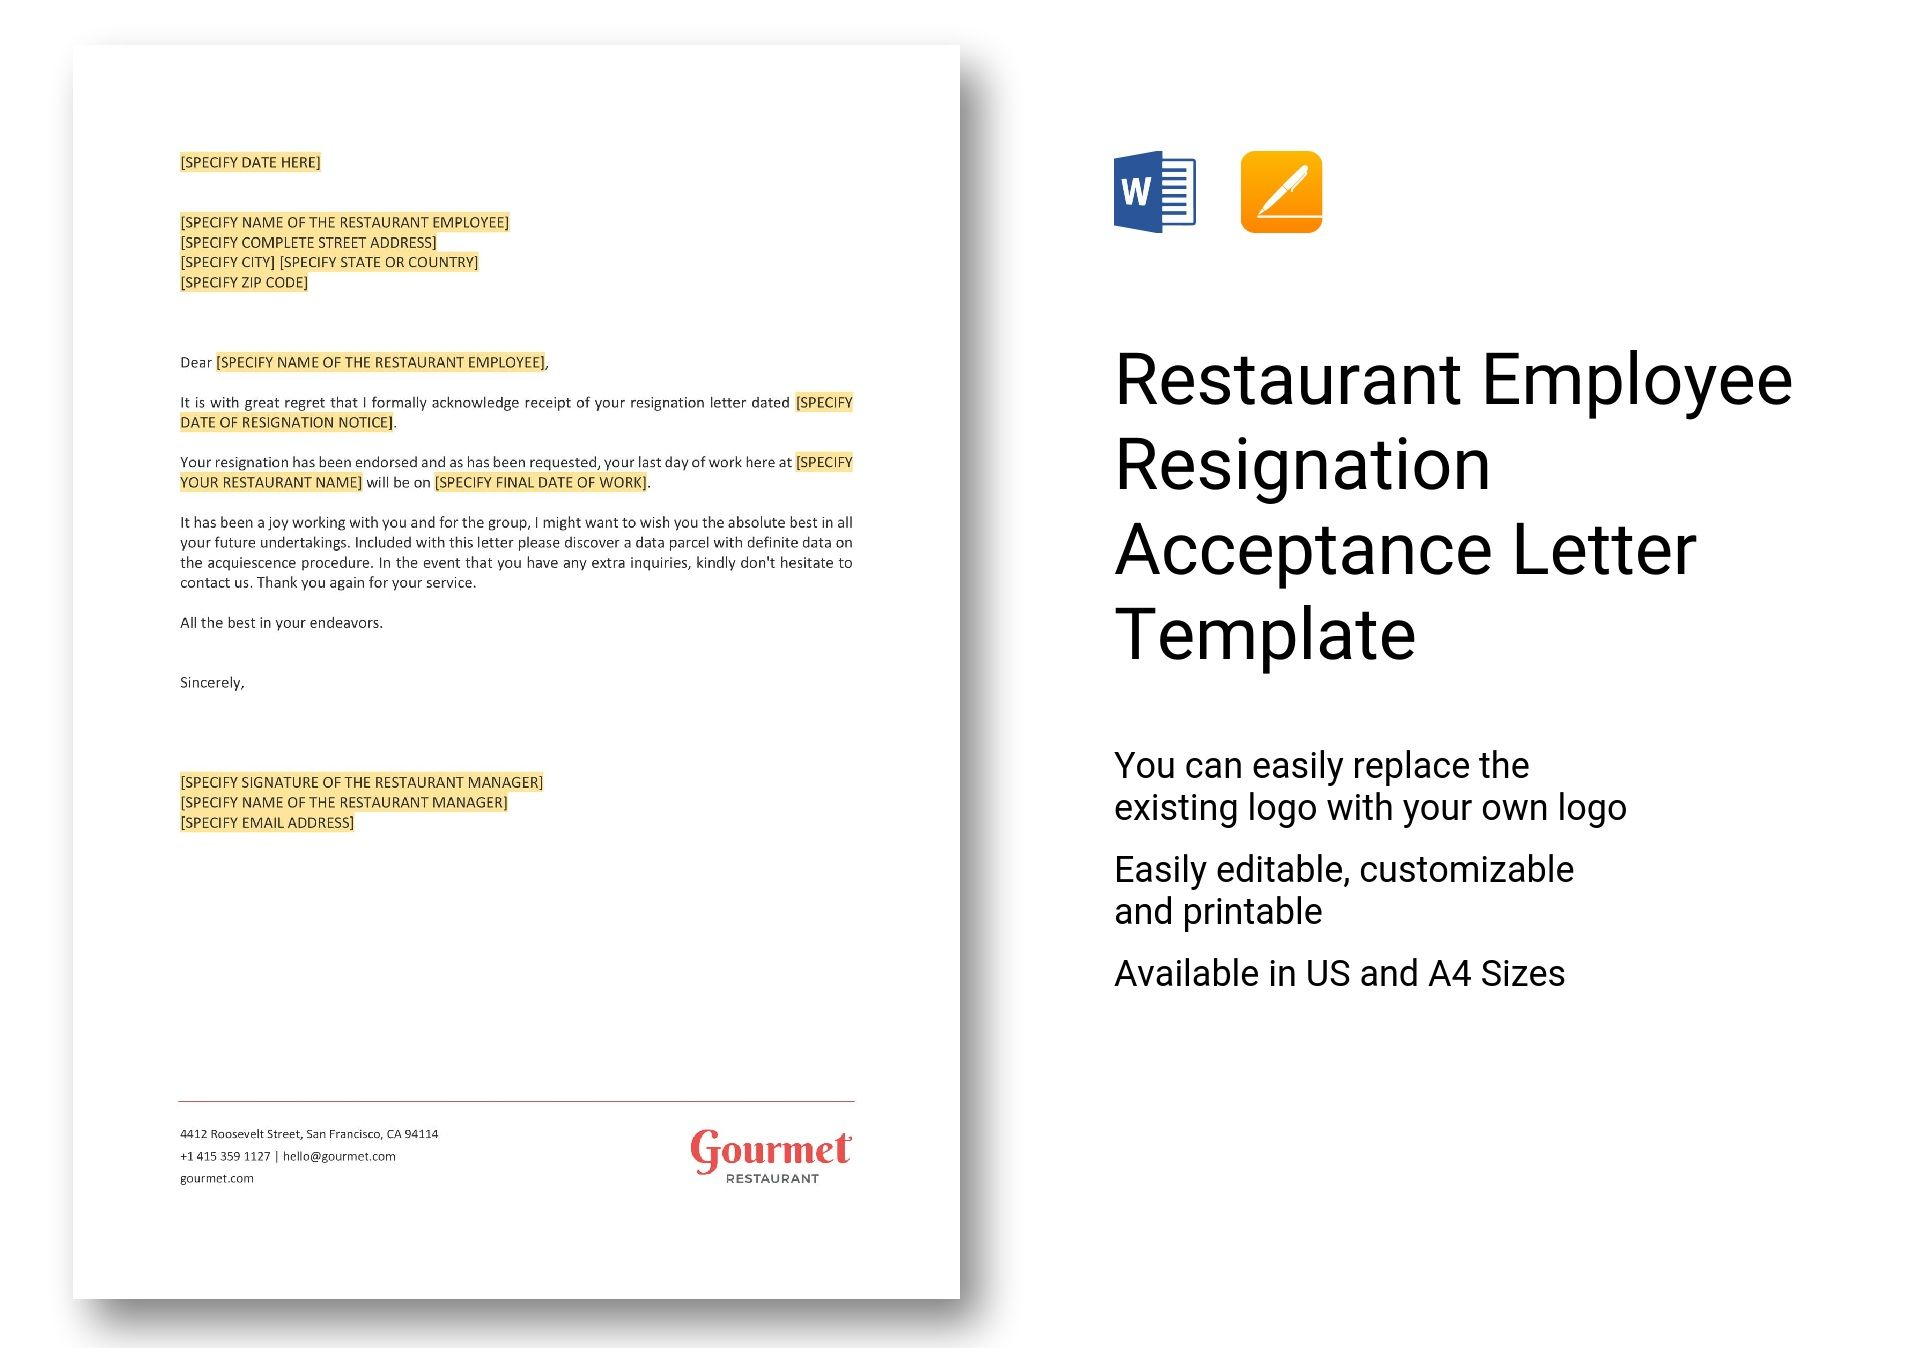 restaurant employee resignation acceptance letter template in word